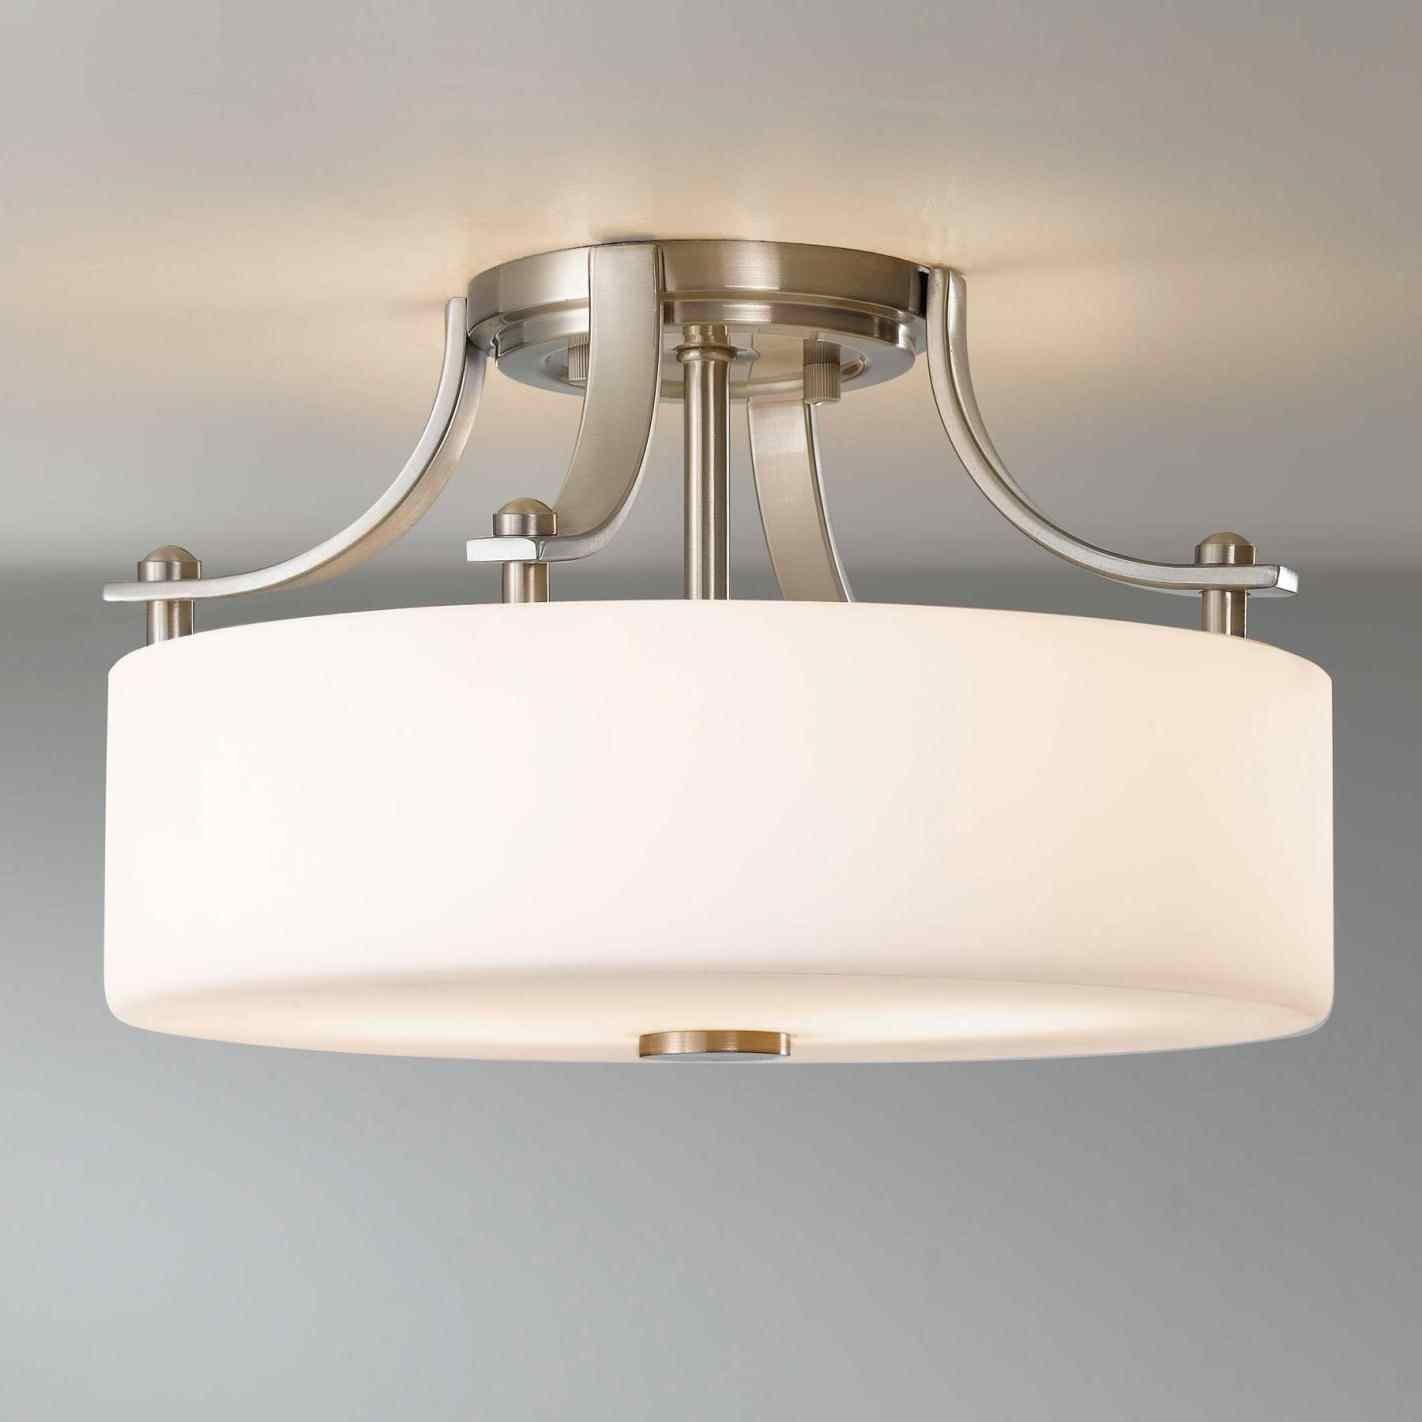 Ceiling Mounted Bathroom Light Fixtures